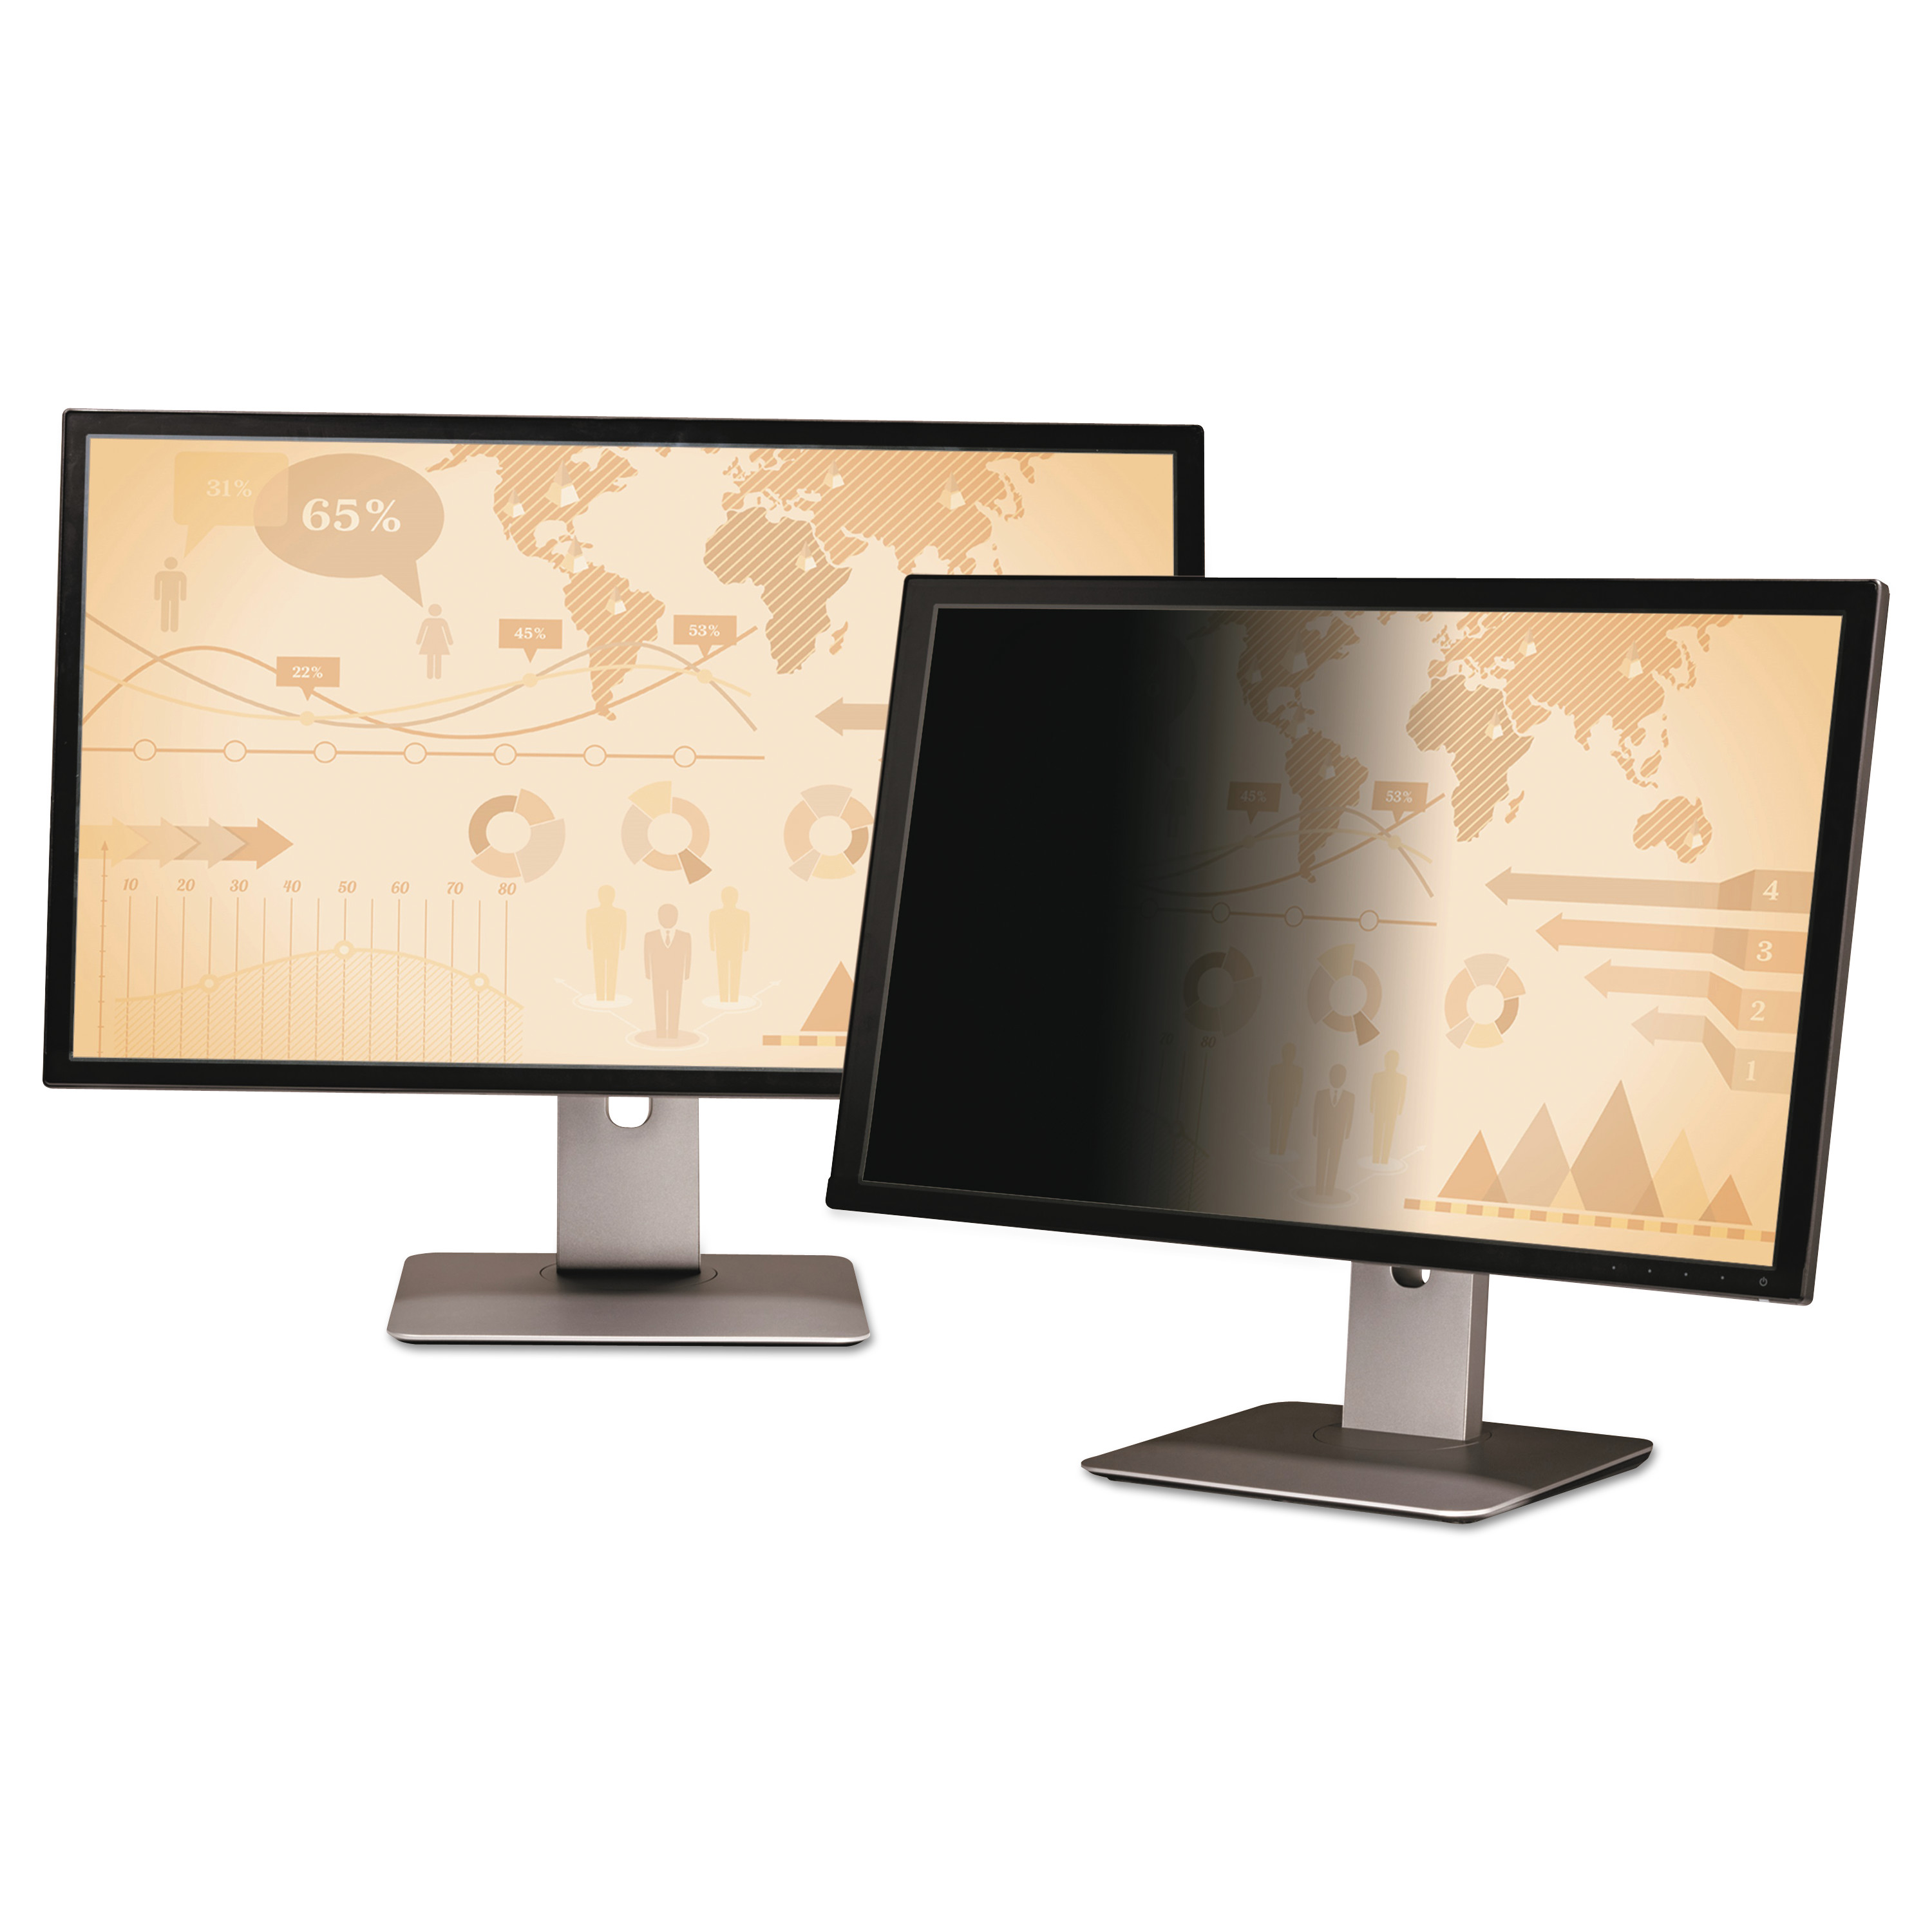 3M Frameless Notebook Monitor Privacy Filters for 34 Widescreen Monitor, 21:9 by 3M